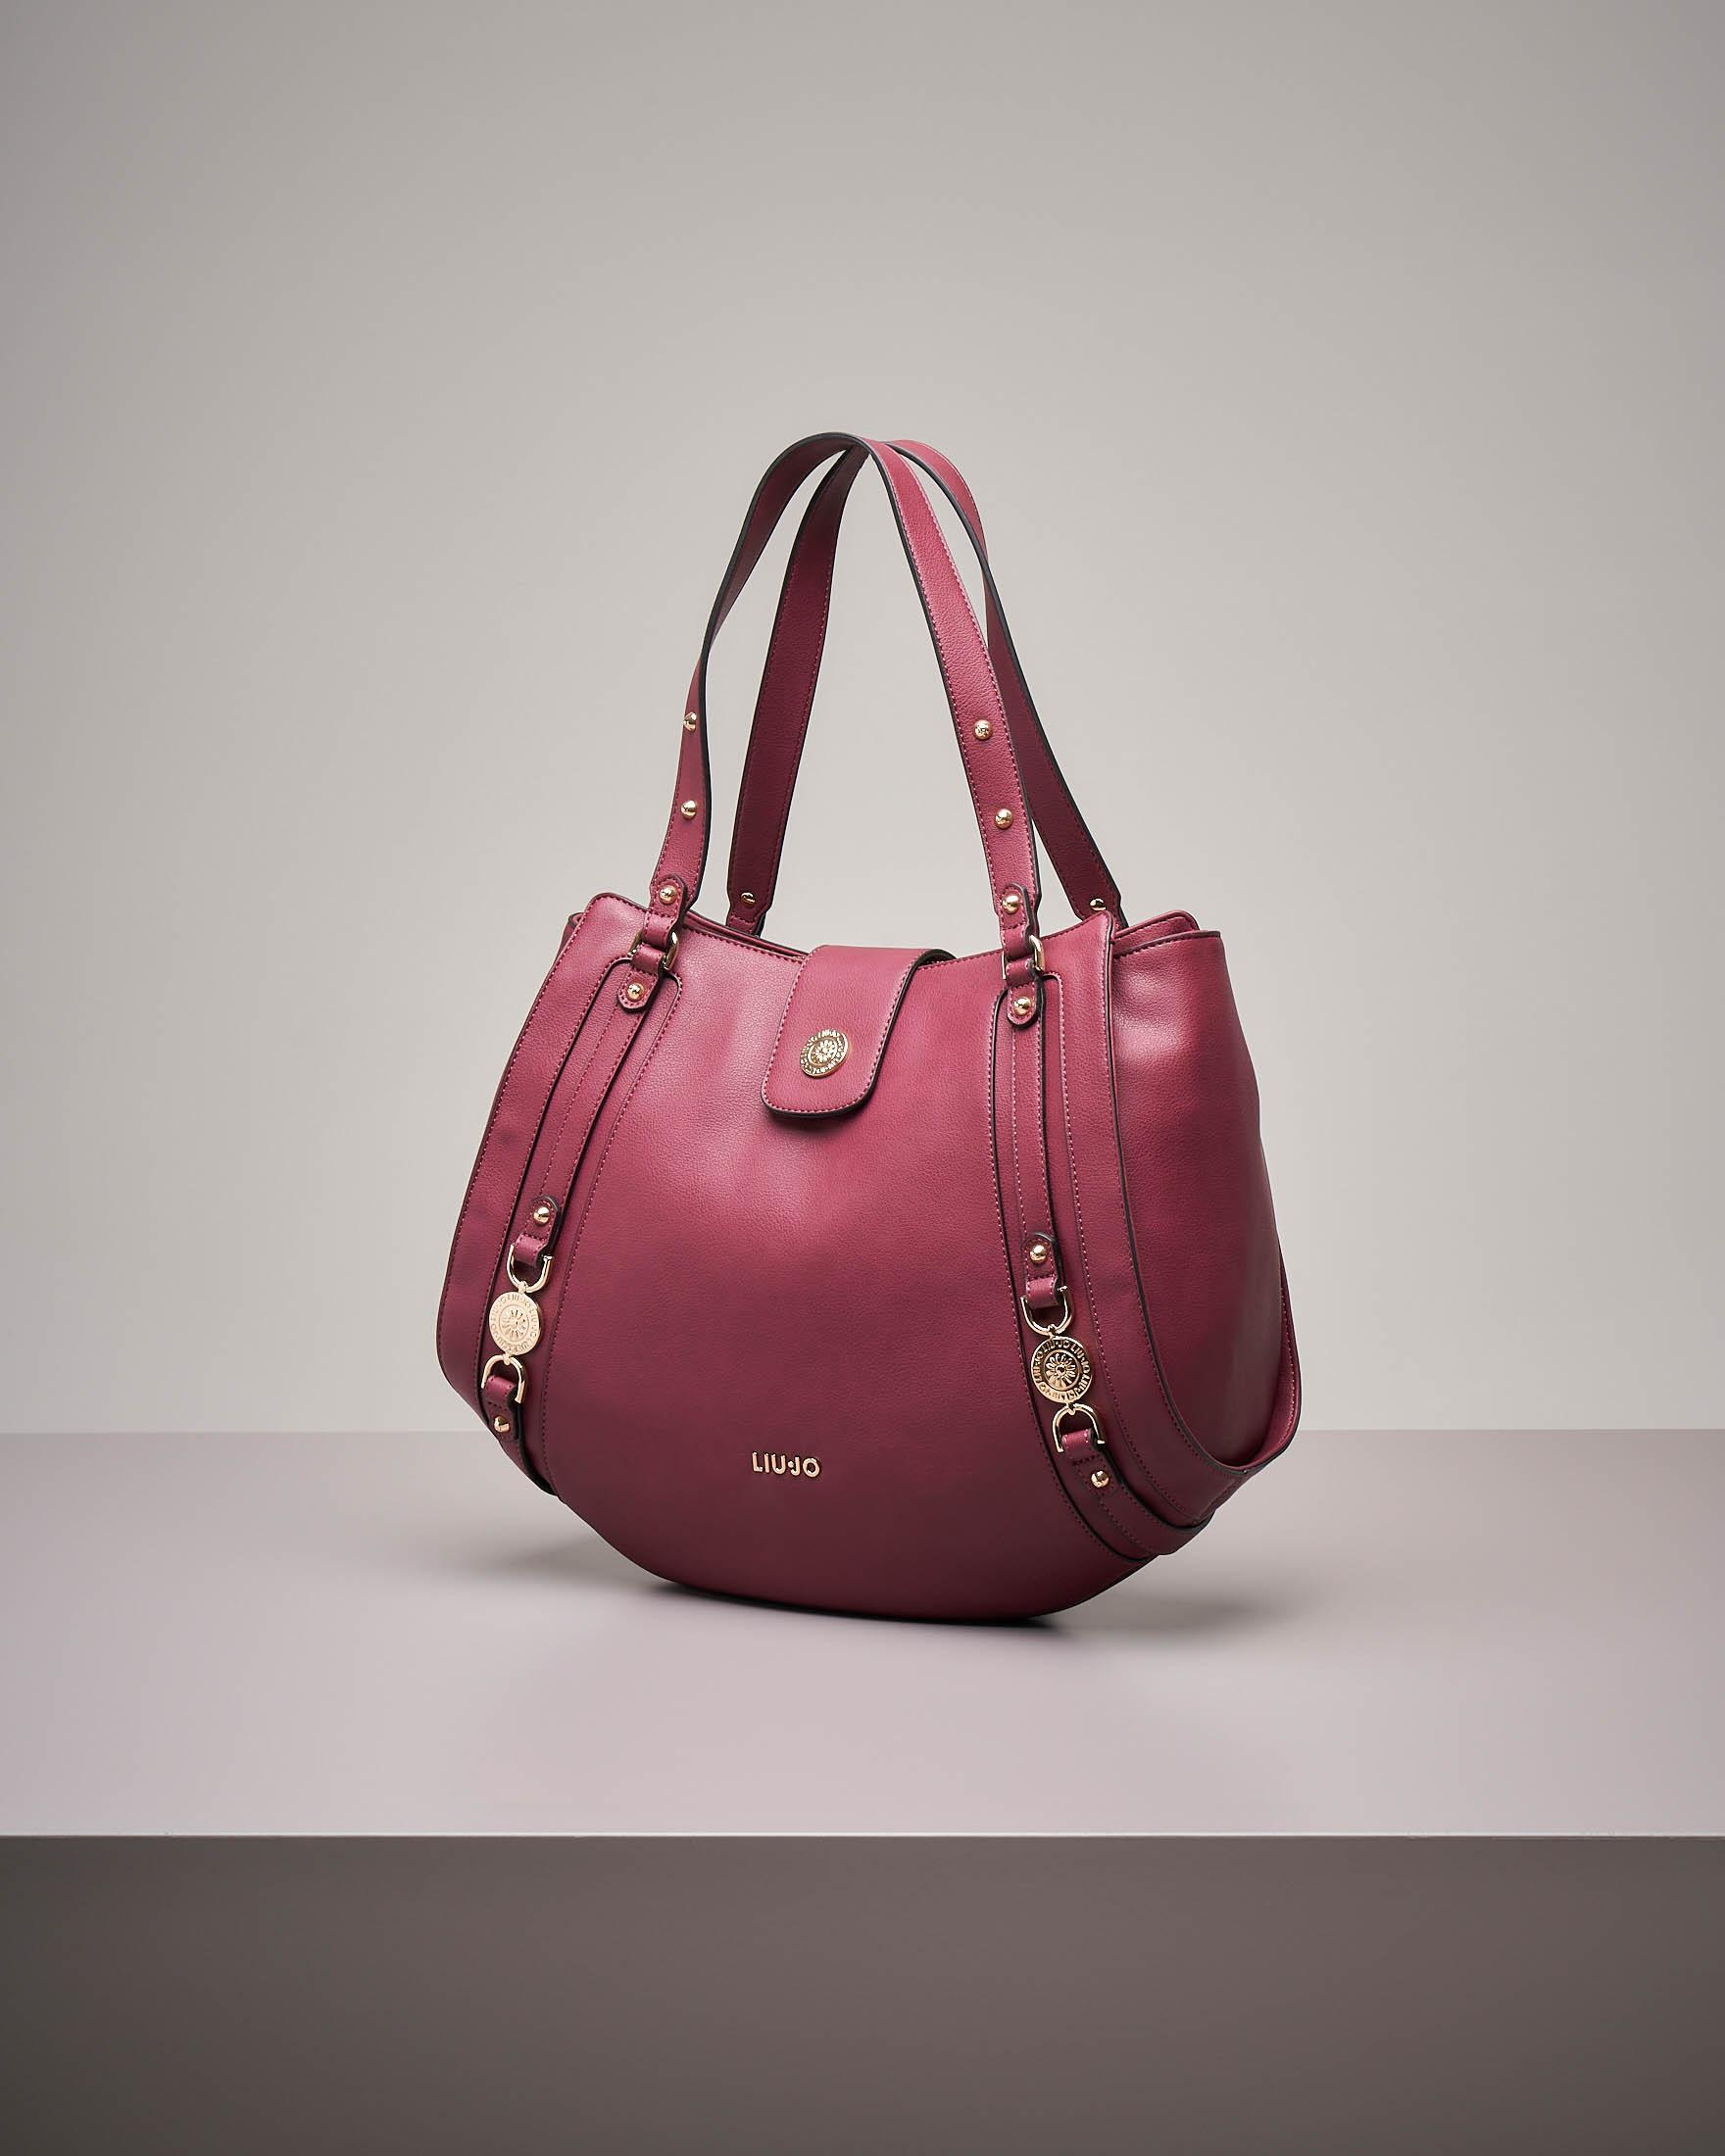 It bag colore bordeaux con decori gioiello